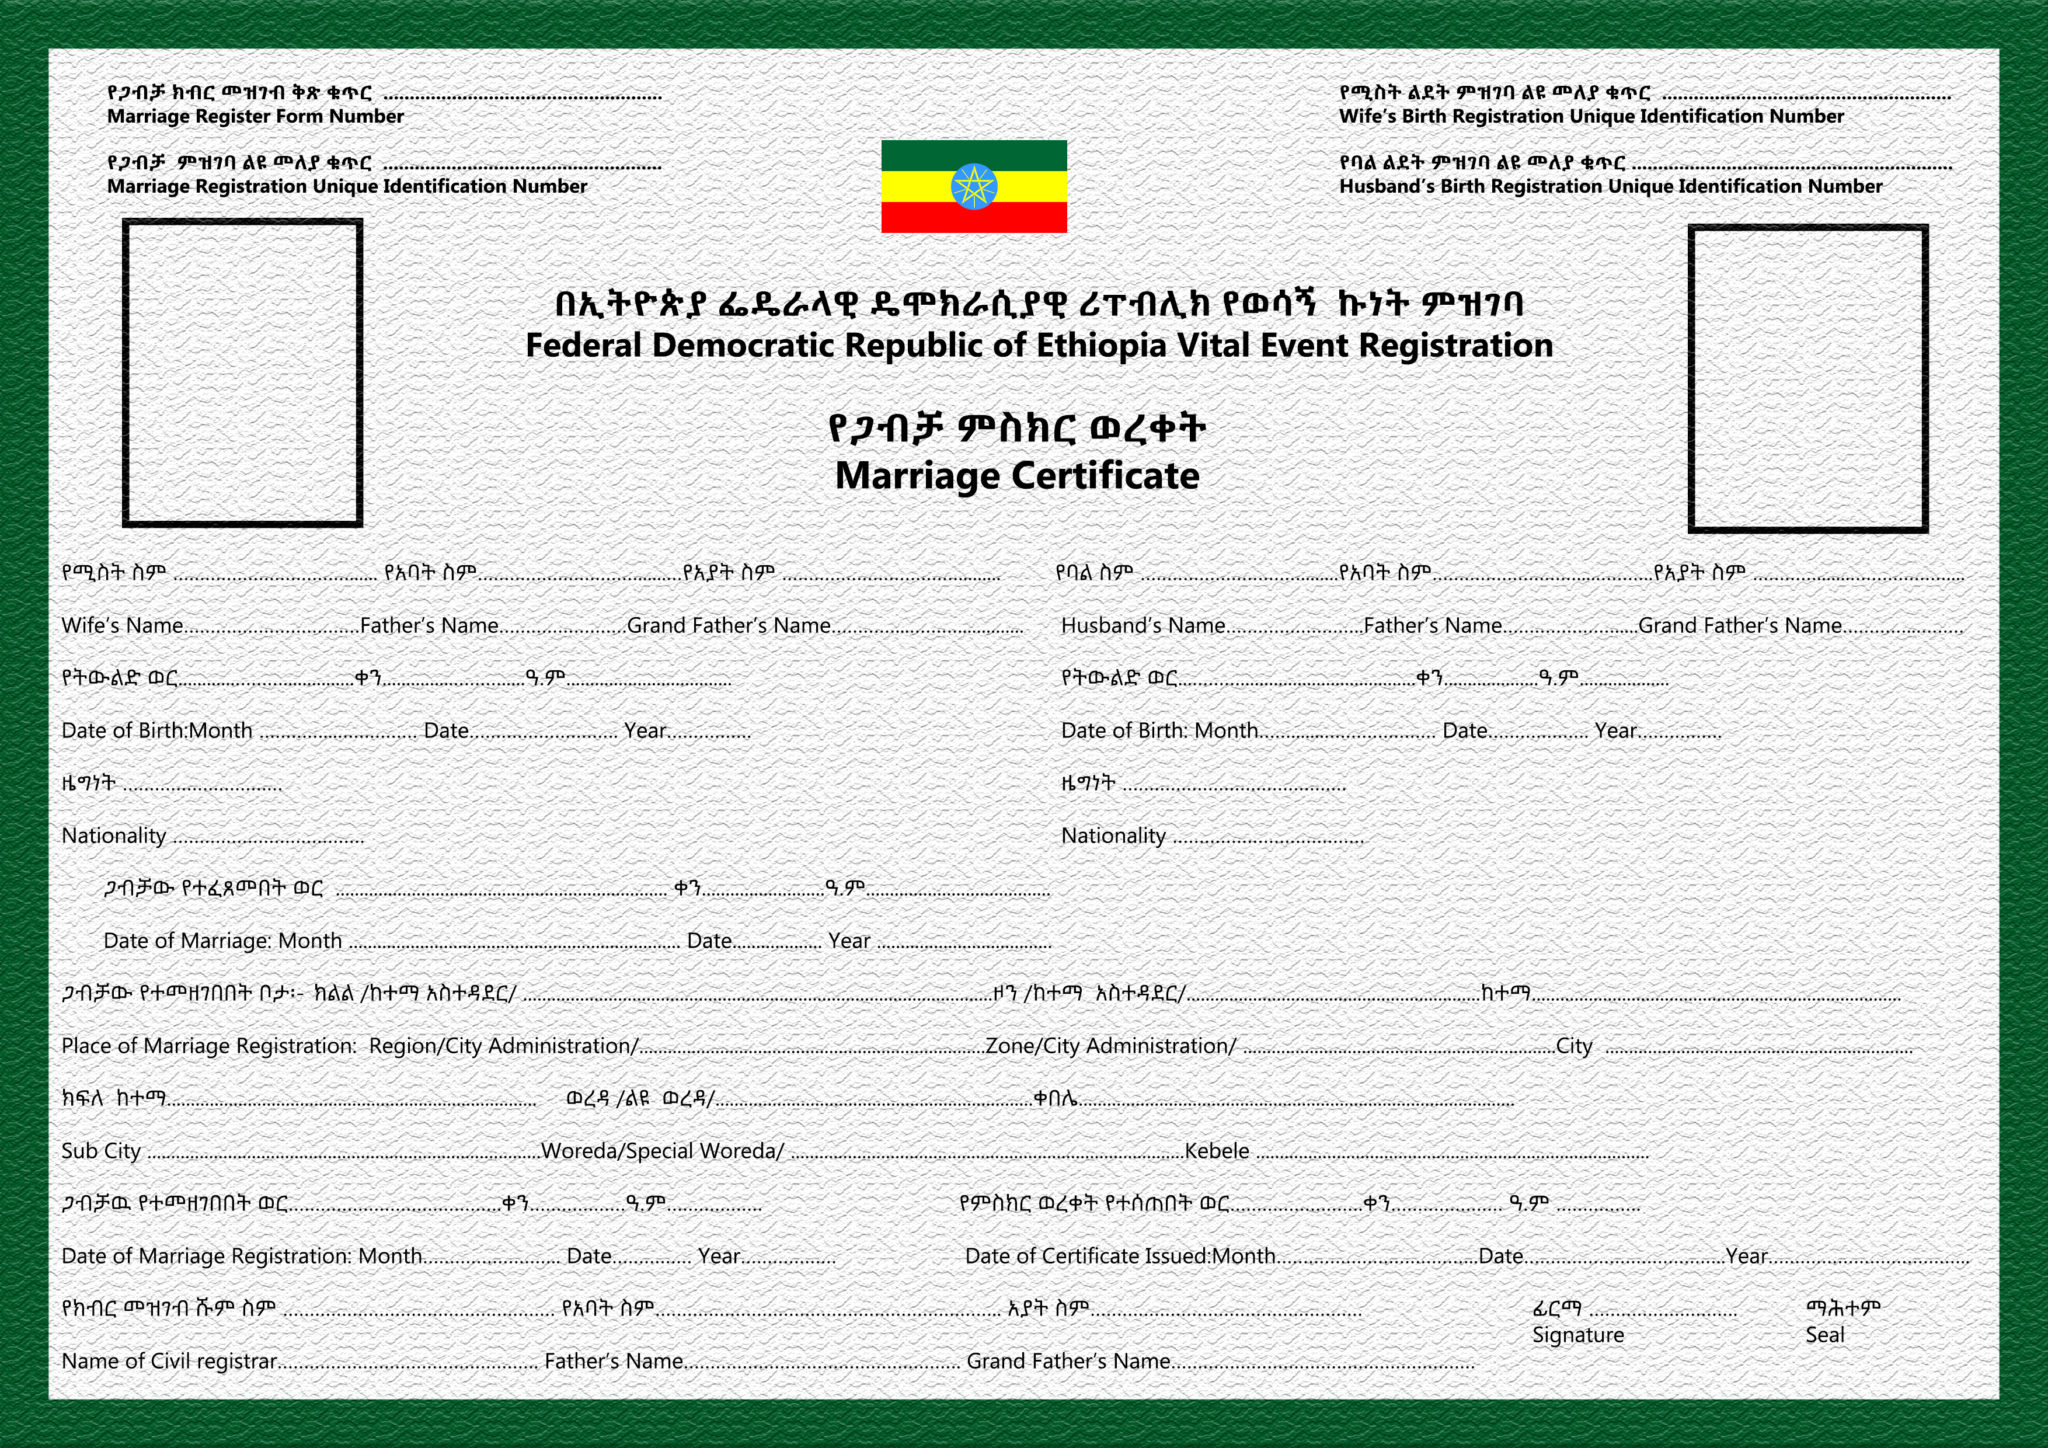 CRVS - Birth, Marriage and Death Registration in Ethiopia